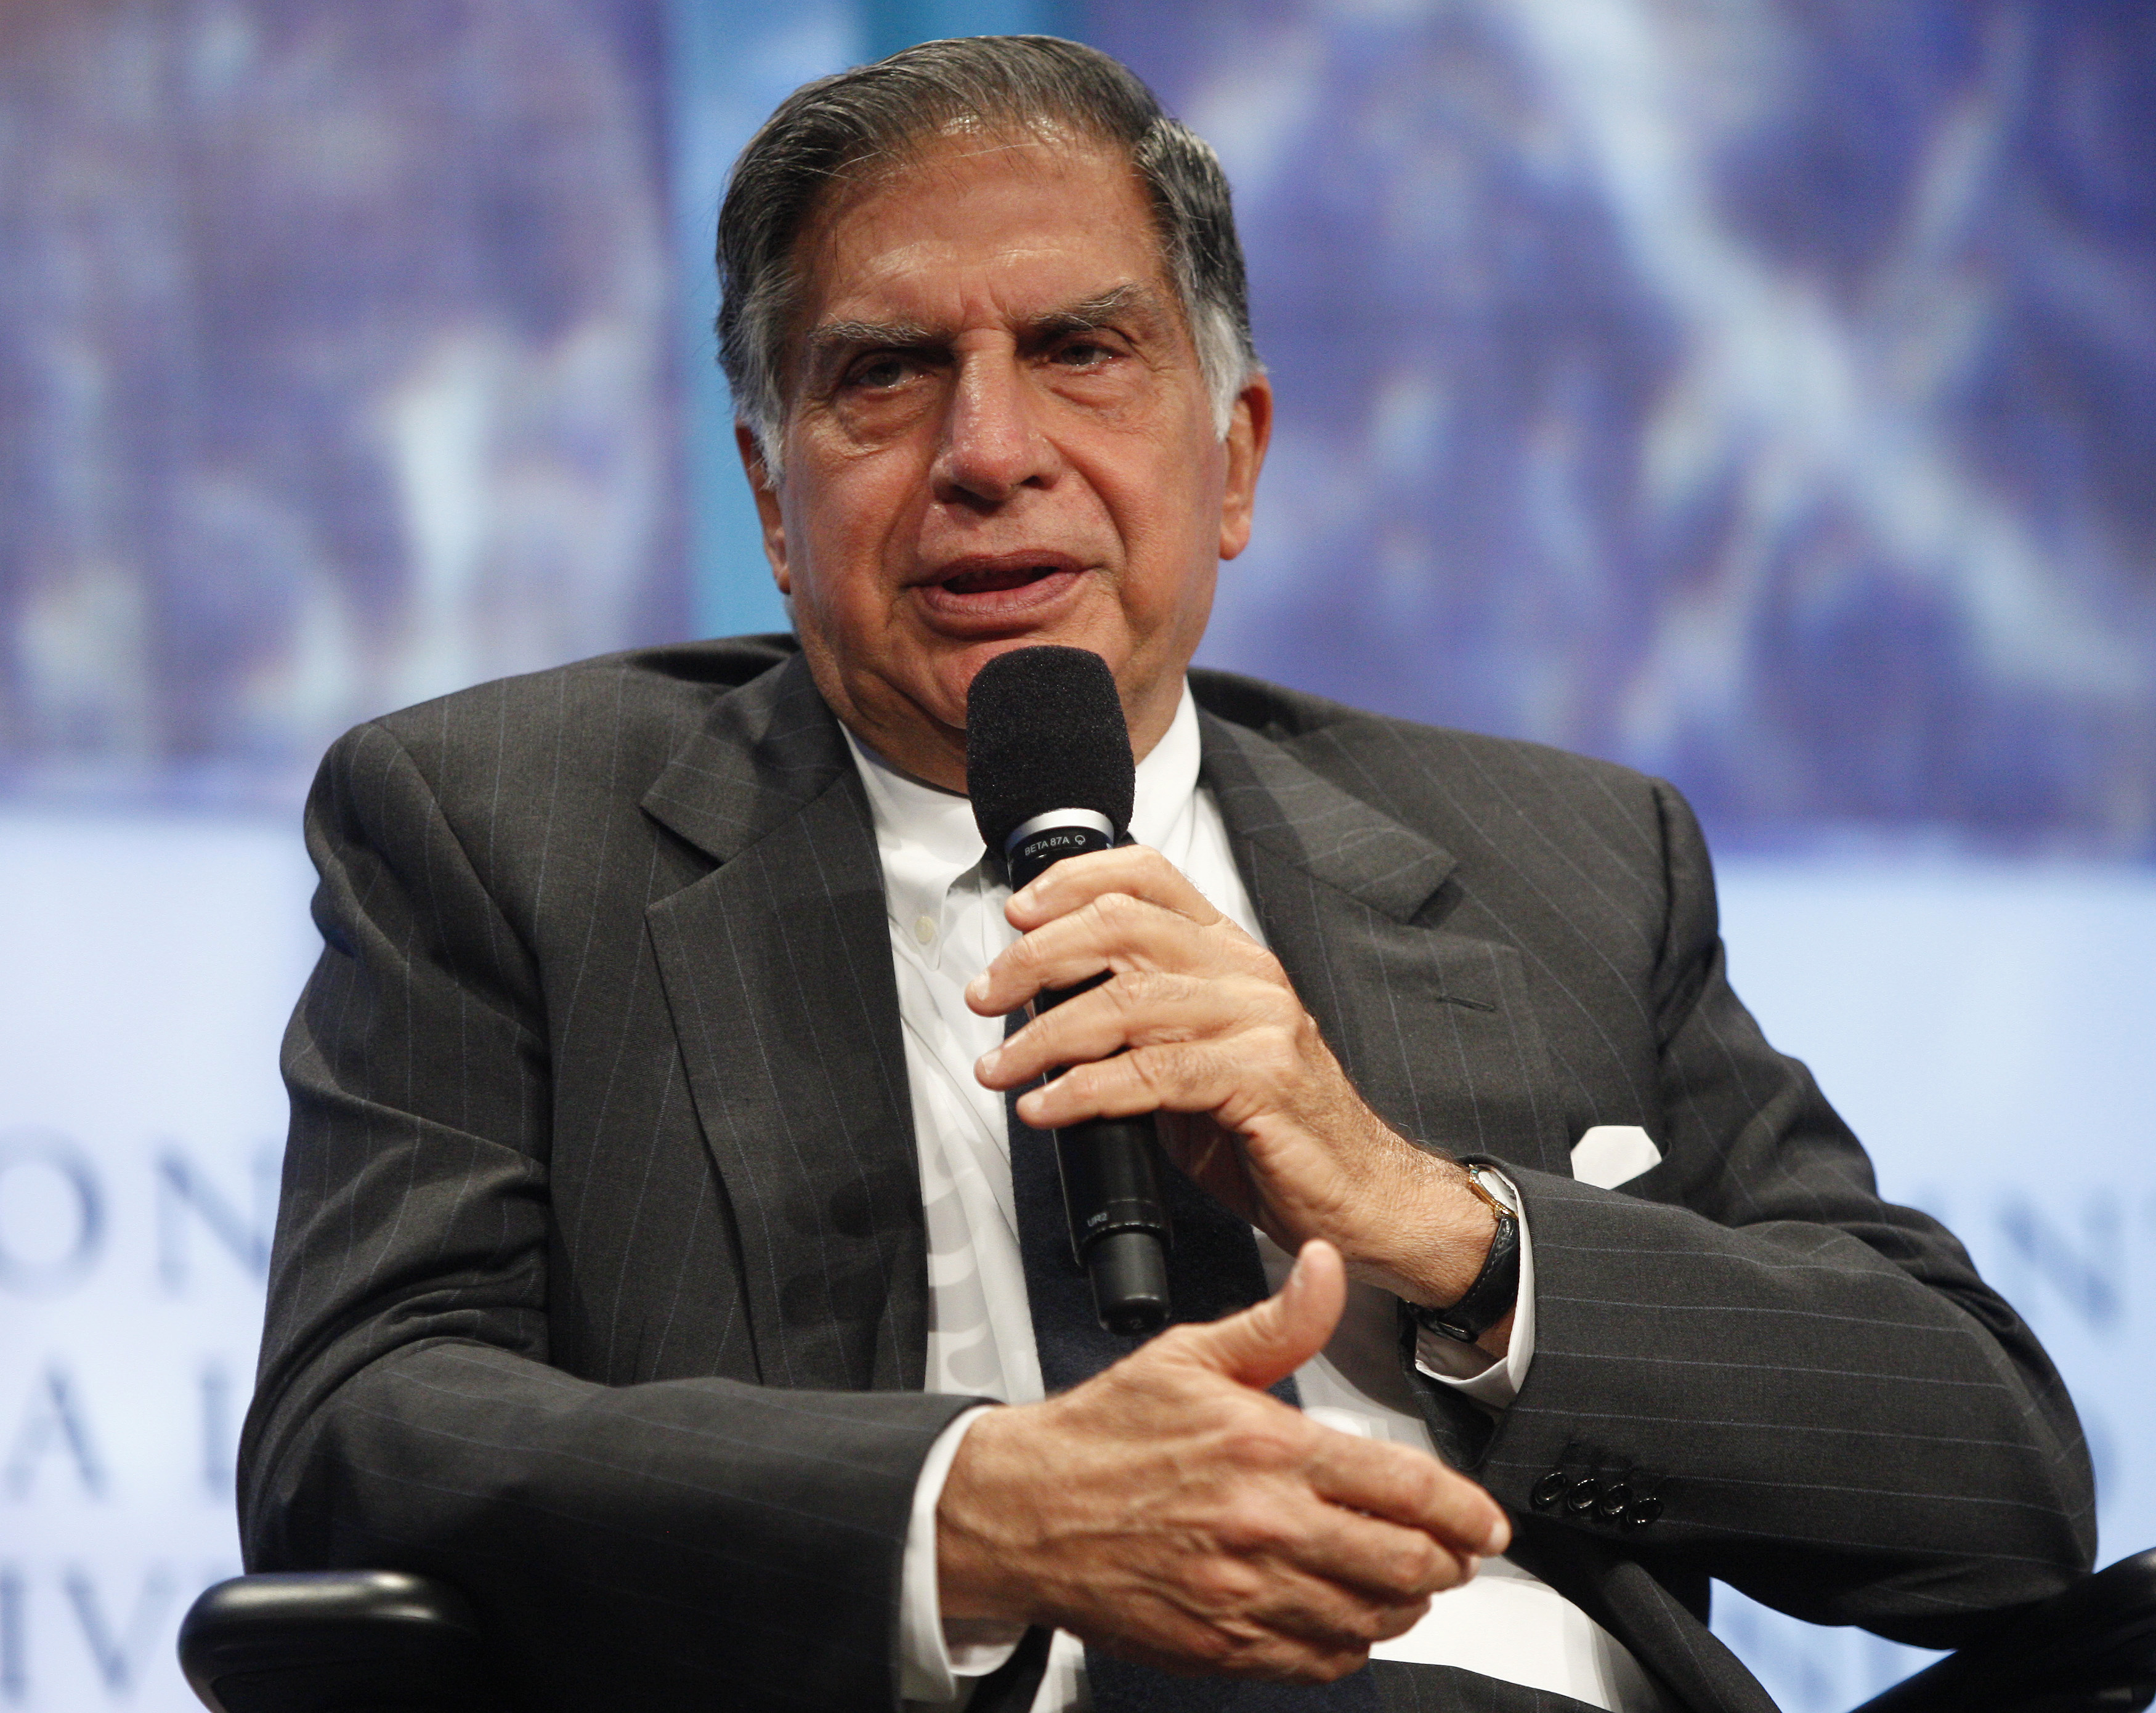 Singapore-based VC firm Jungle Ventures appoints Ratan Tata as special adviser